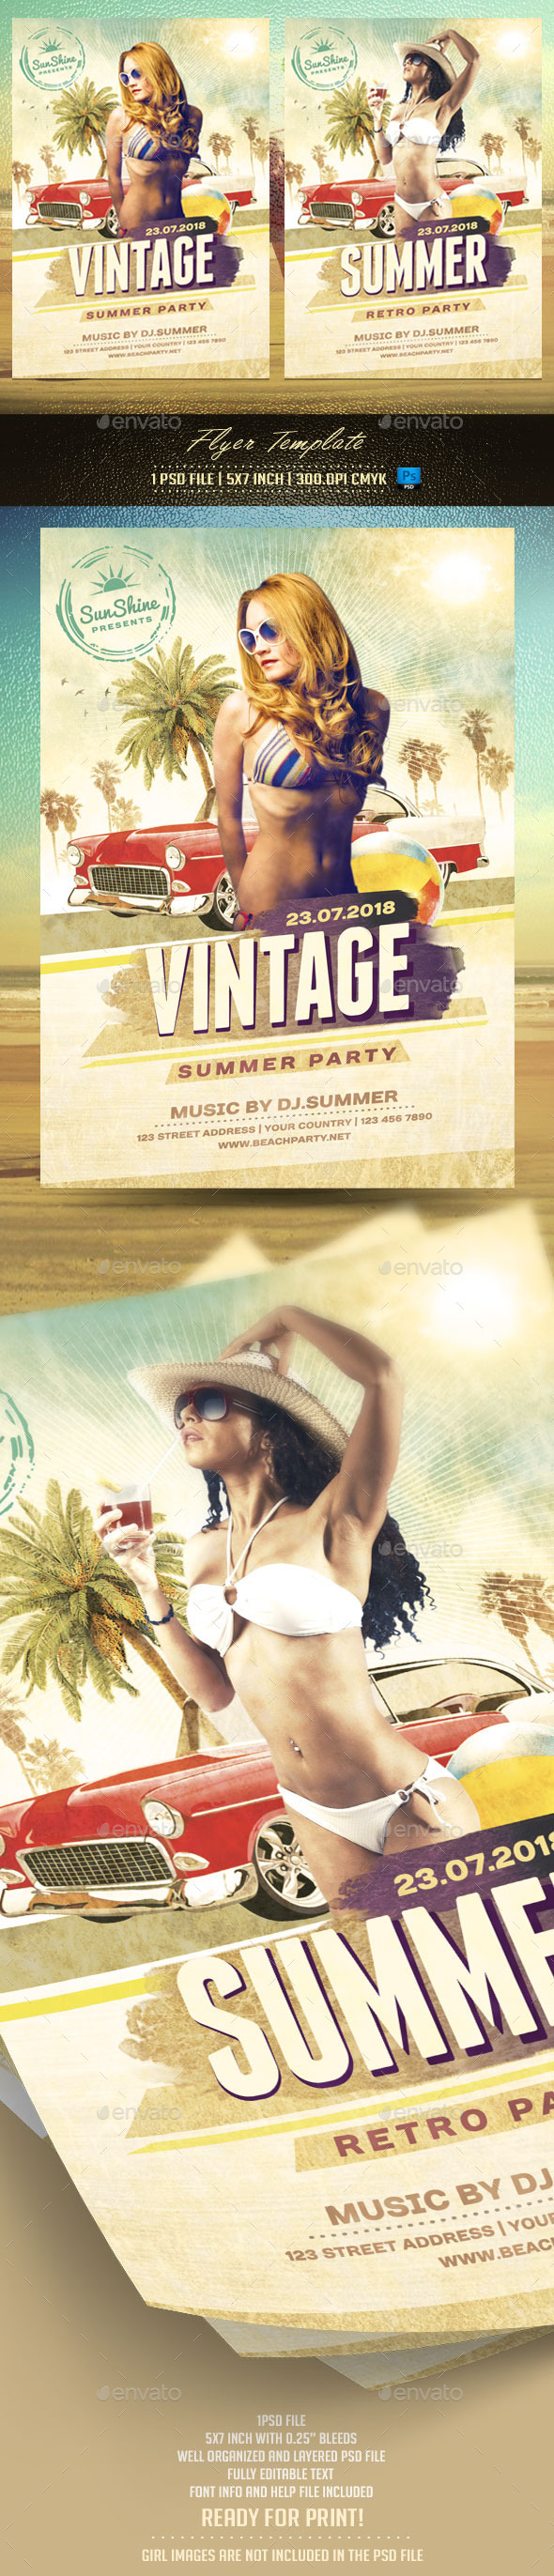 GraphicRiver Vintage Summer Flyer Template 11780087